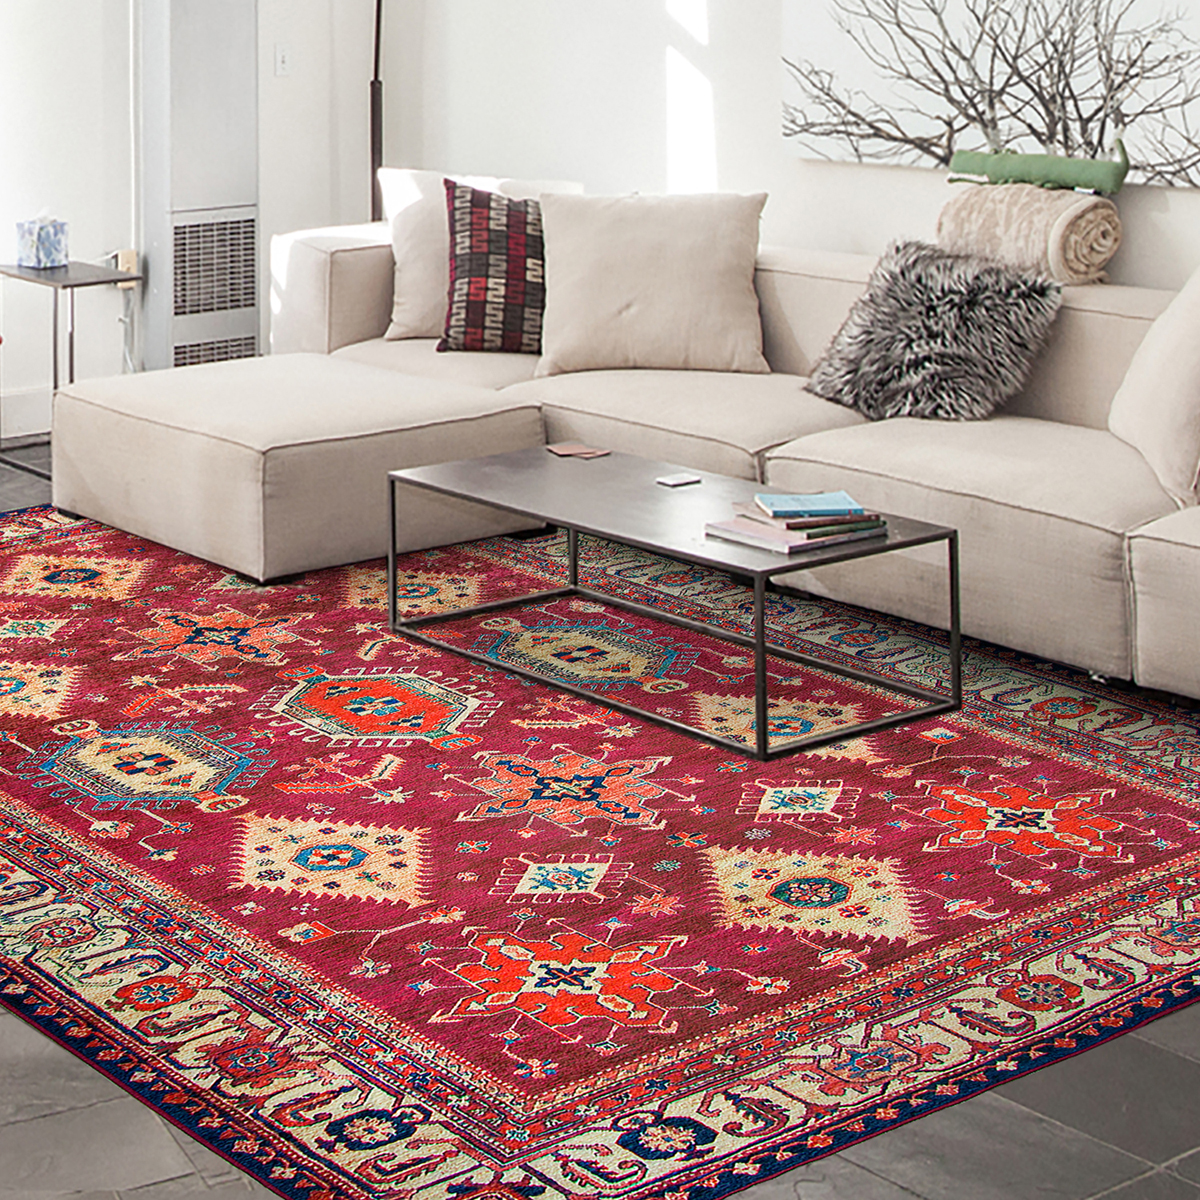 Local Stabilizers Rug.Ruggable Washable 8x10 Area Rug Noor Ruby